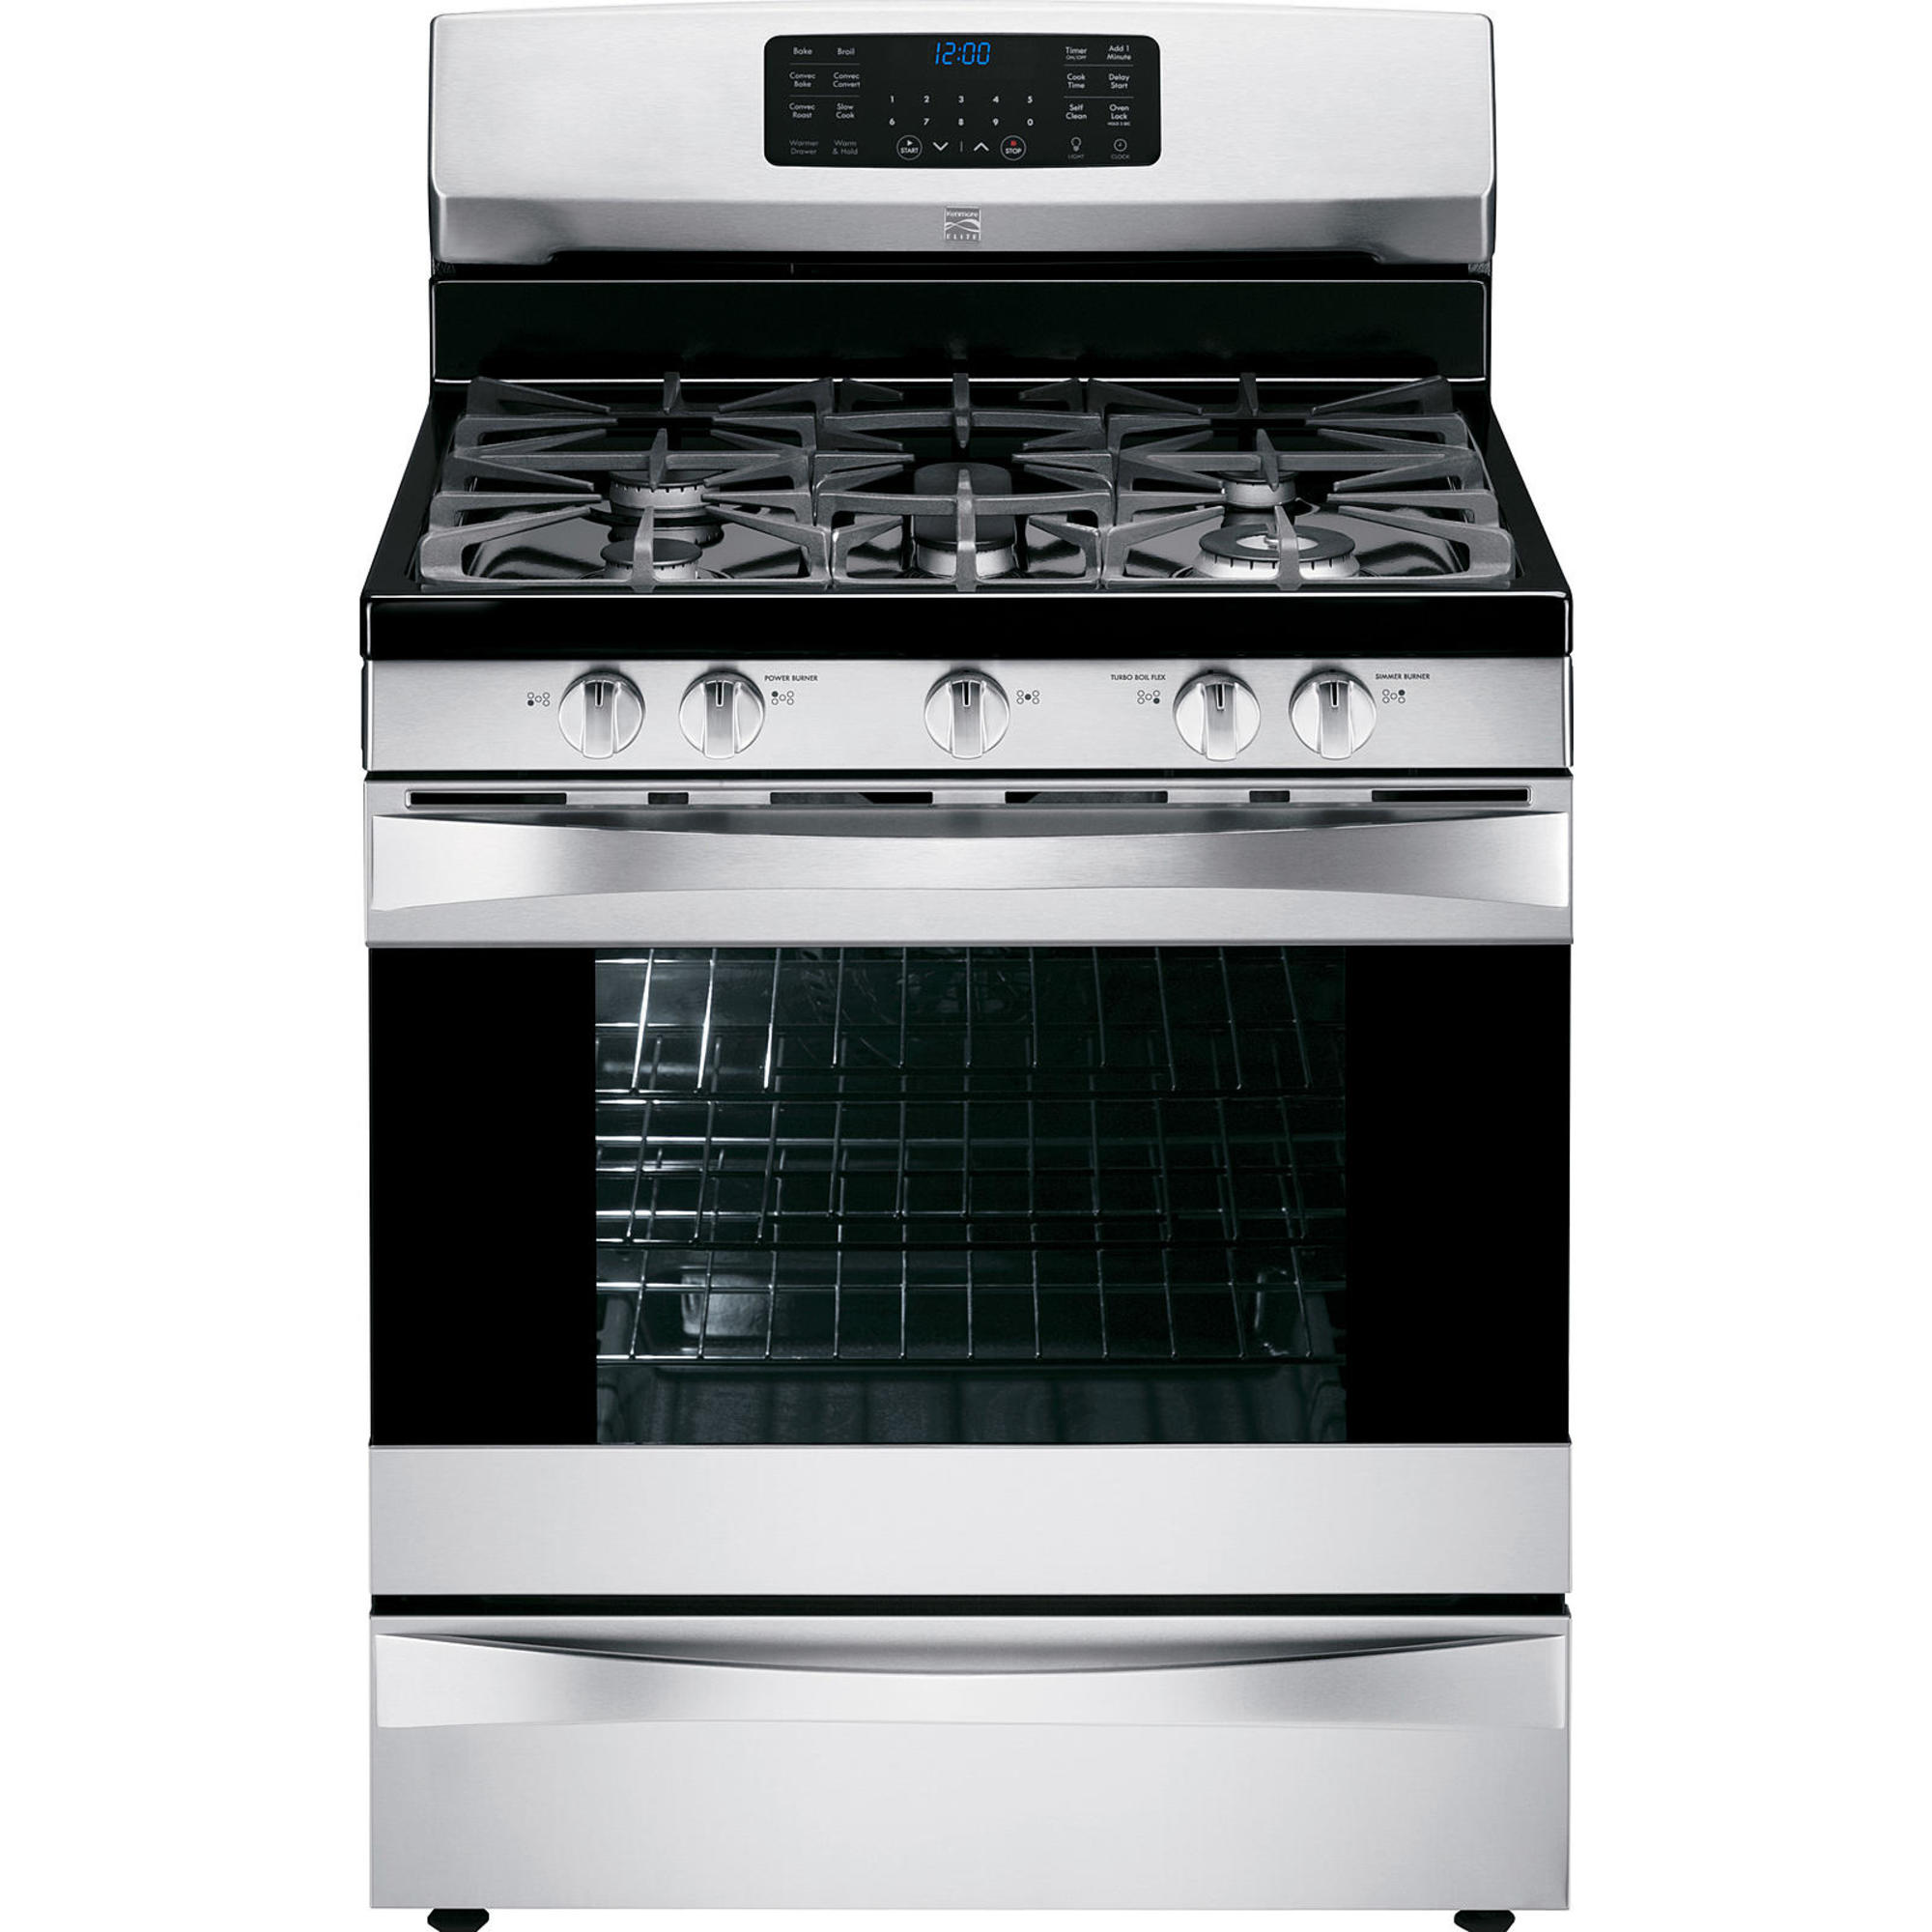 Kenmore-Elite-75233-5-6-cu-ft-Gas-Range-w-True-Convection-Stainless-Steel